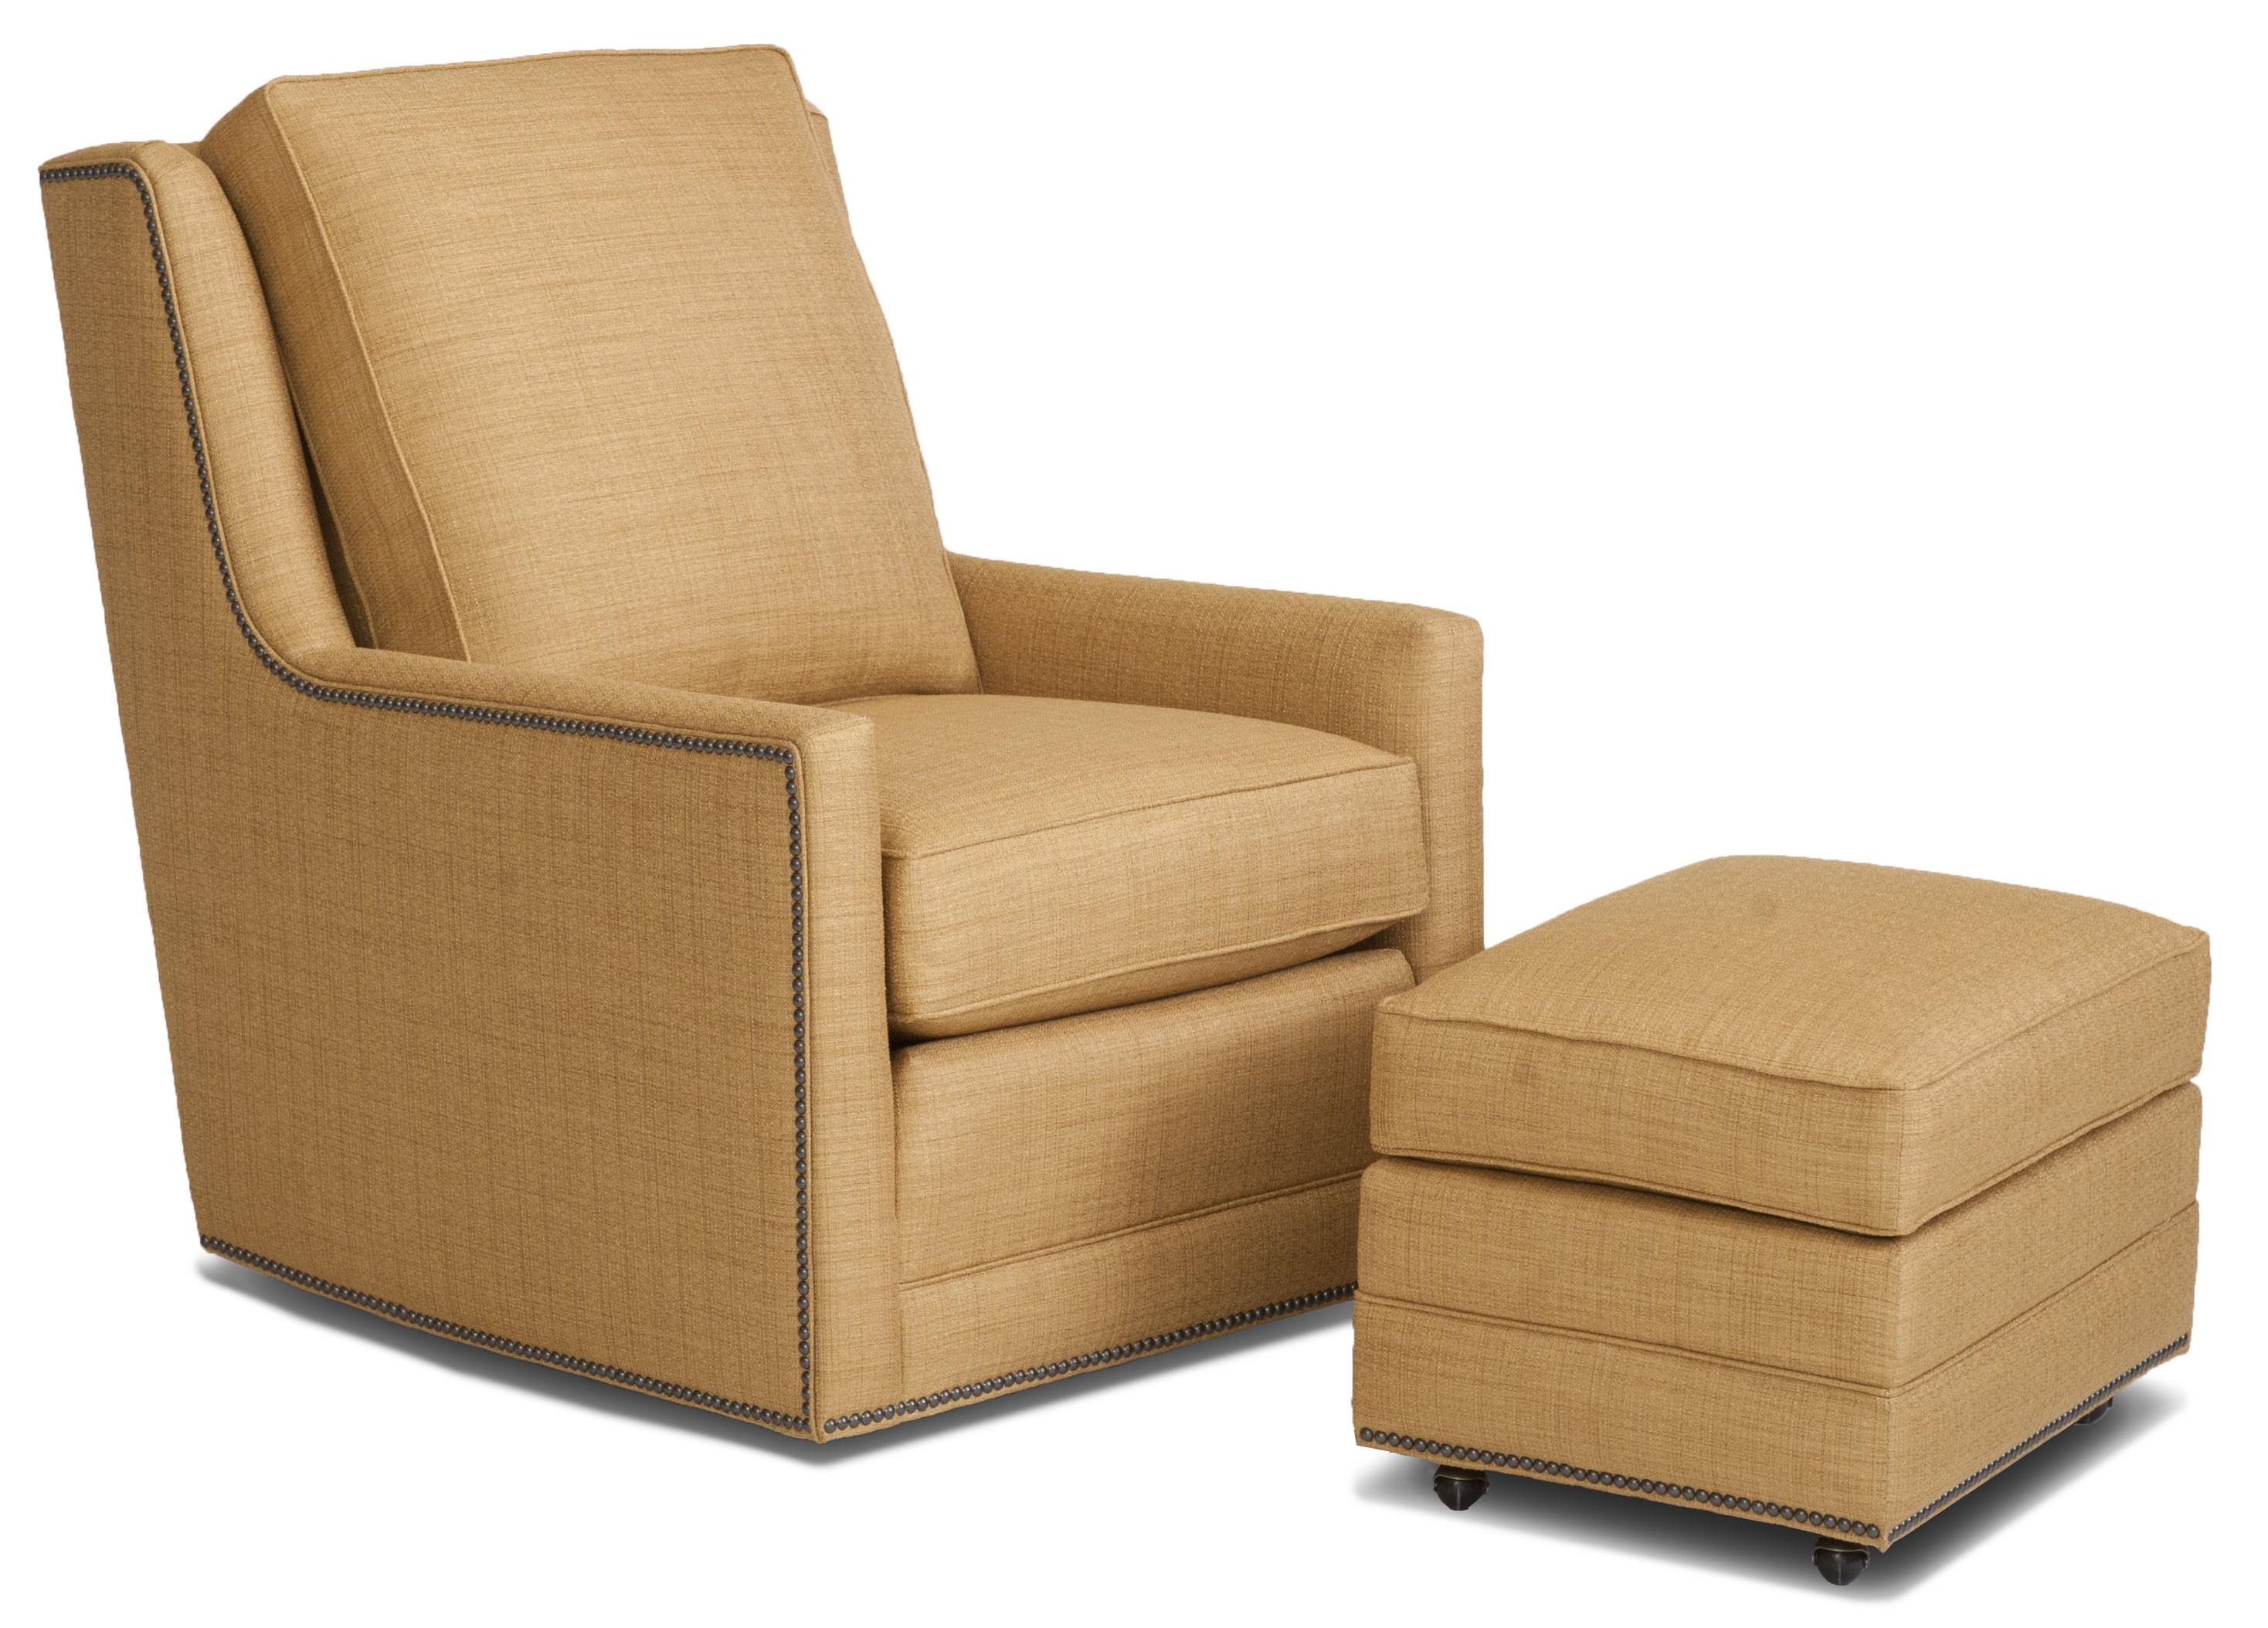 Smith brothers accent chairs and ottomans sb transitional for Best chair and ottoman